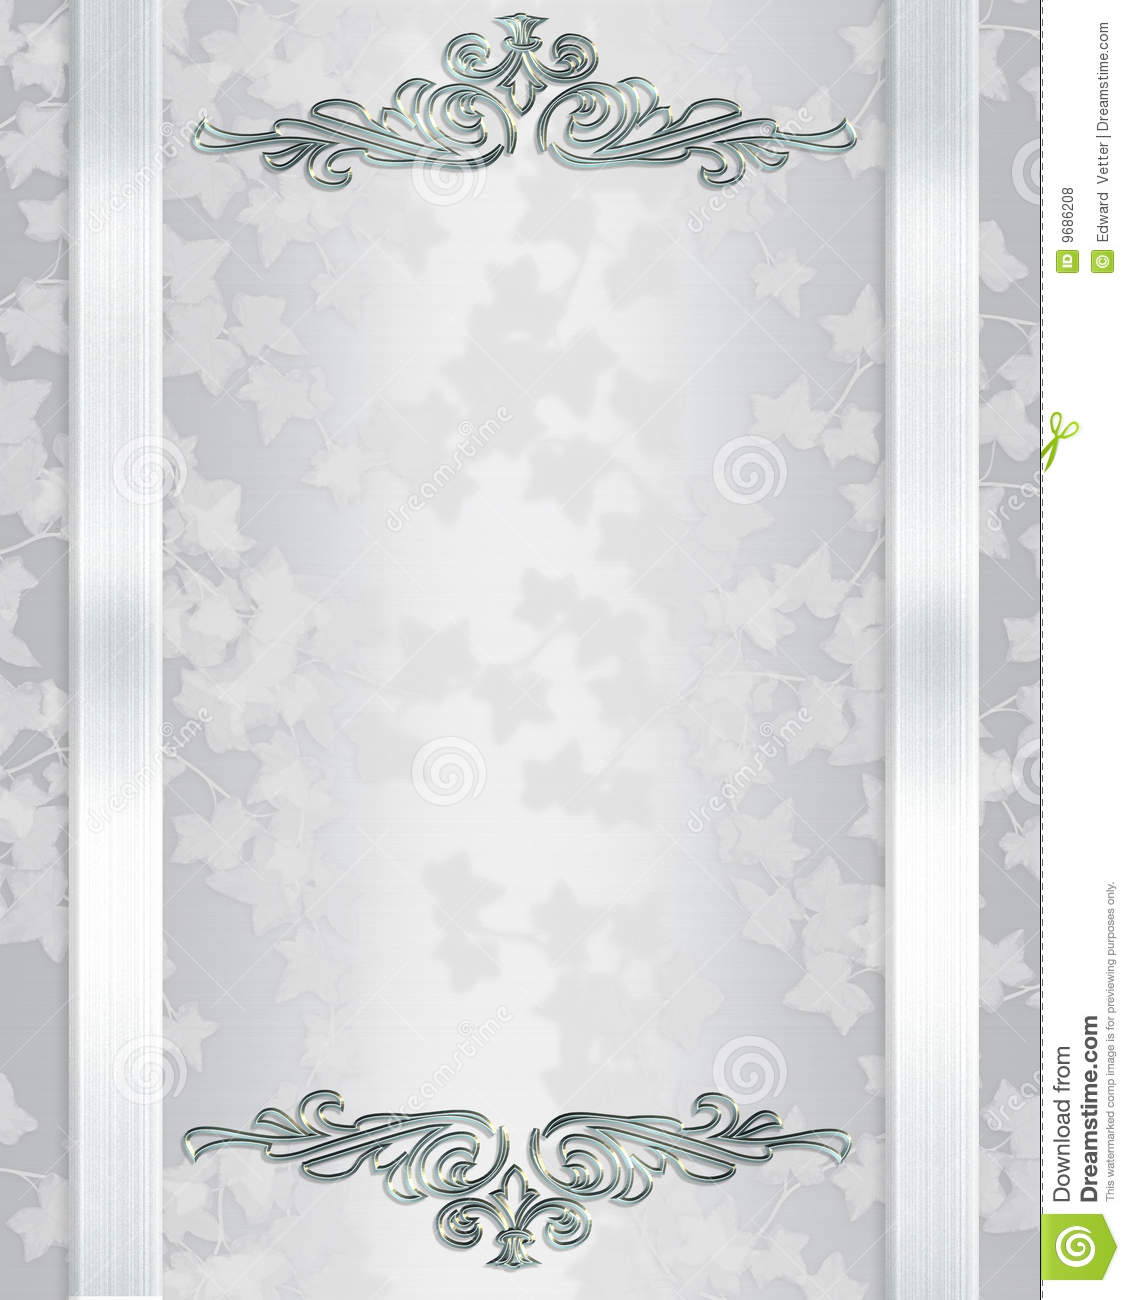 Wedding Invitation Background Elegant Stock Illustration - Image ...